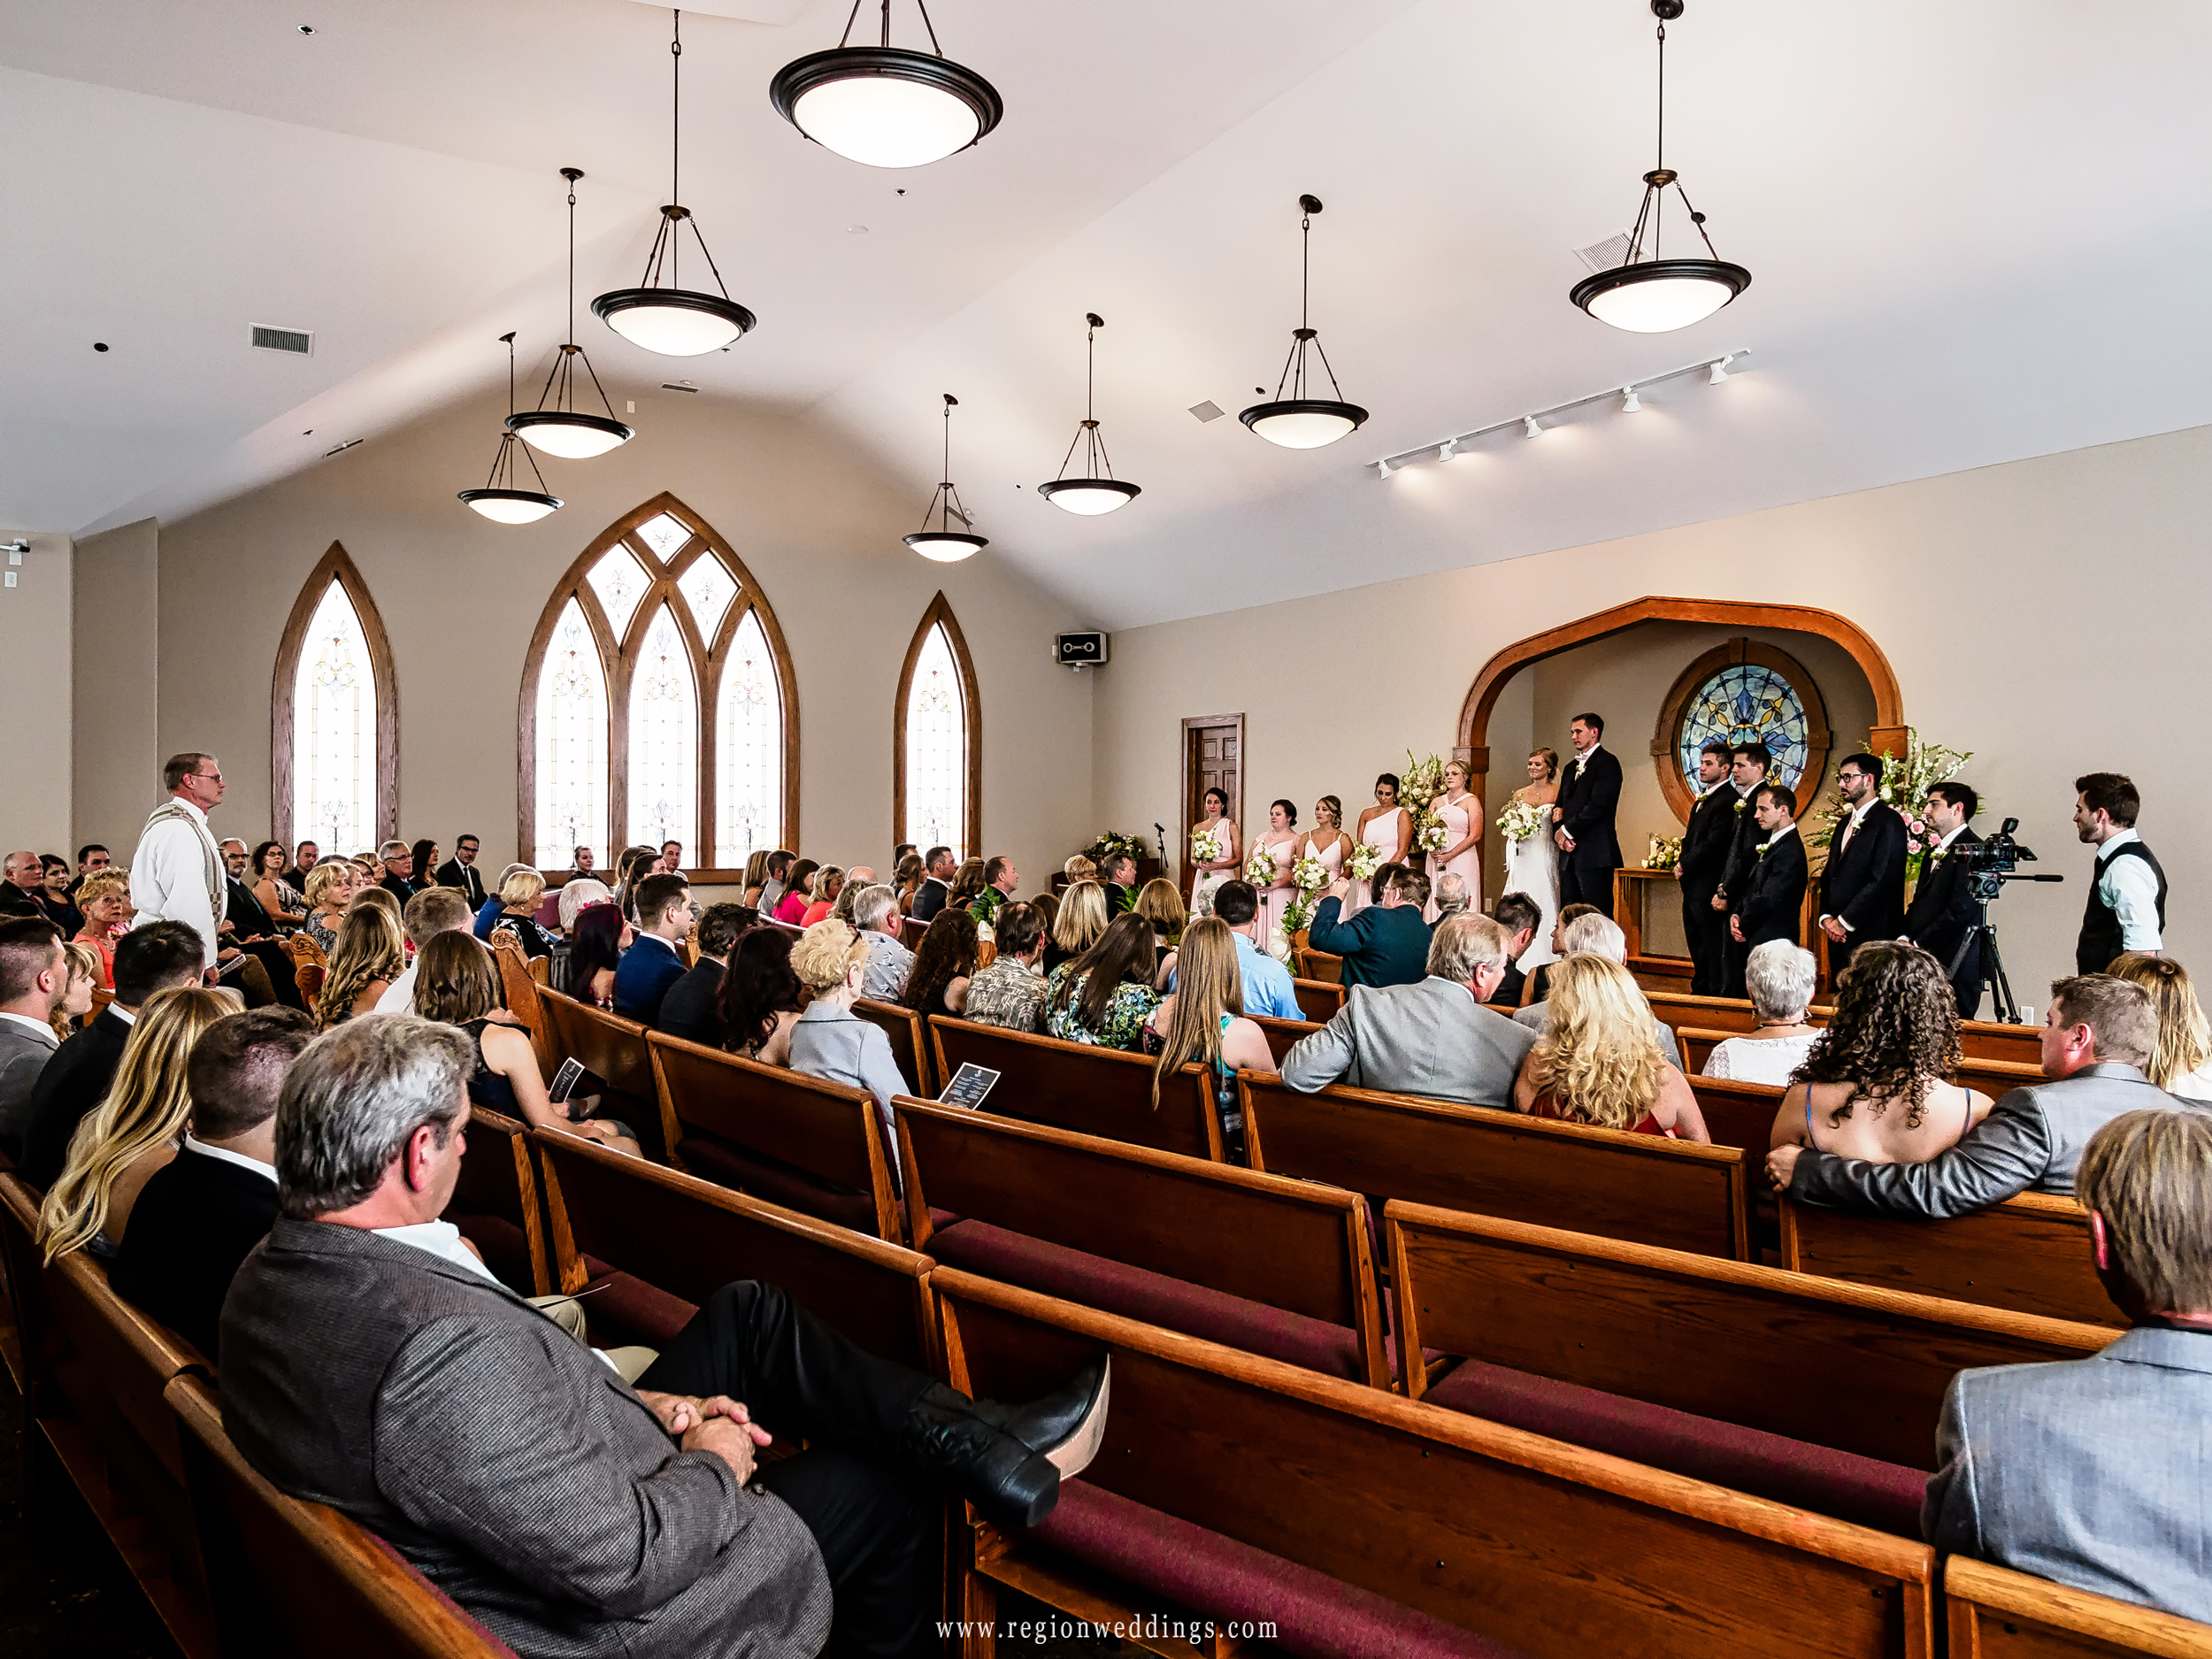 Congregation attend a wedding ceremony at Aberdeen Chapel in Valparaiso.